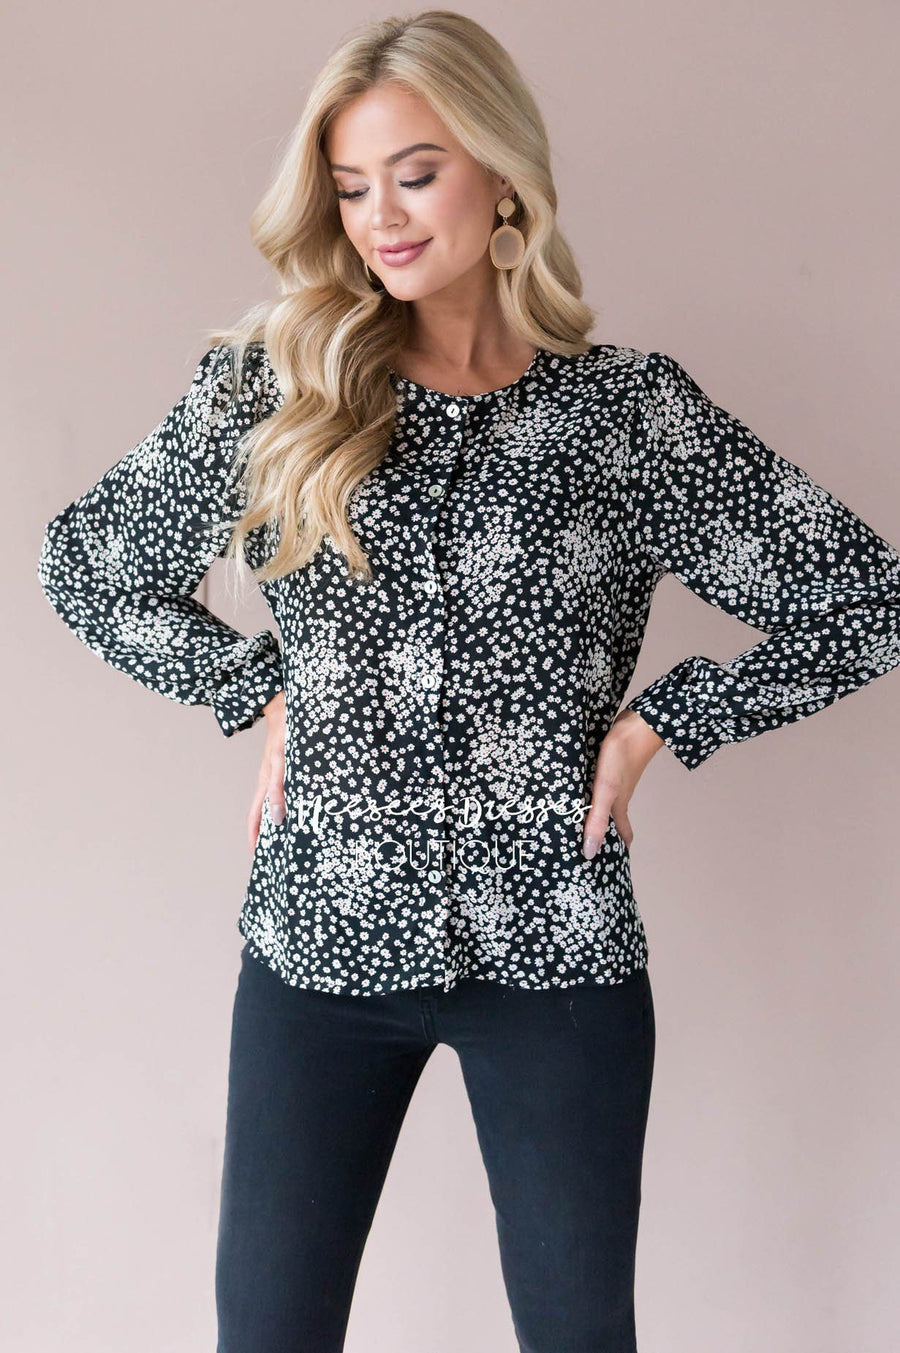 Floral Frenzy blouse